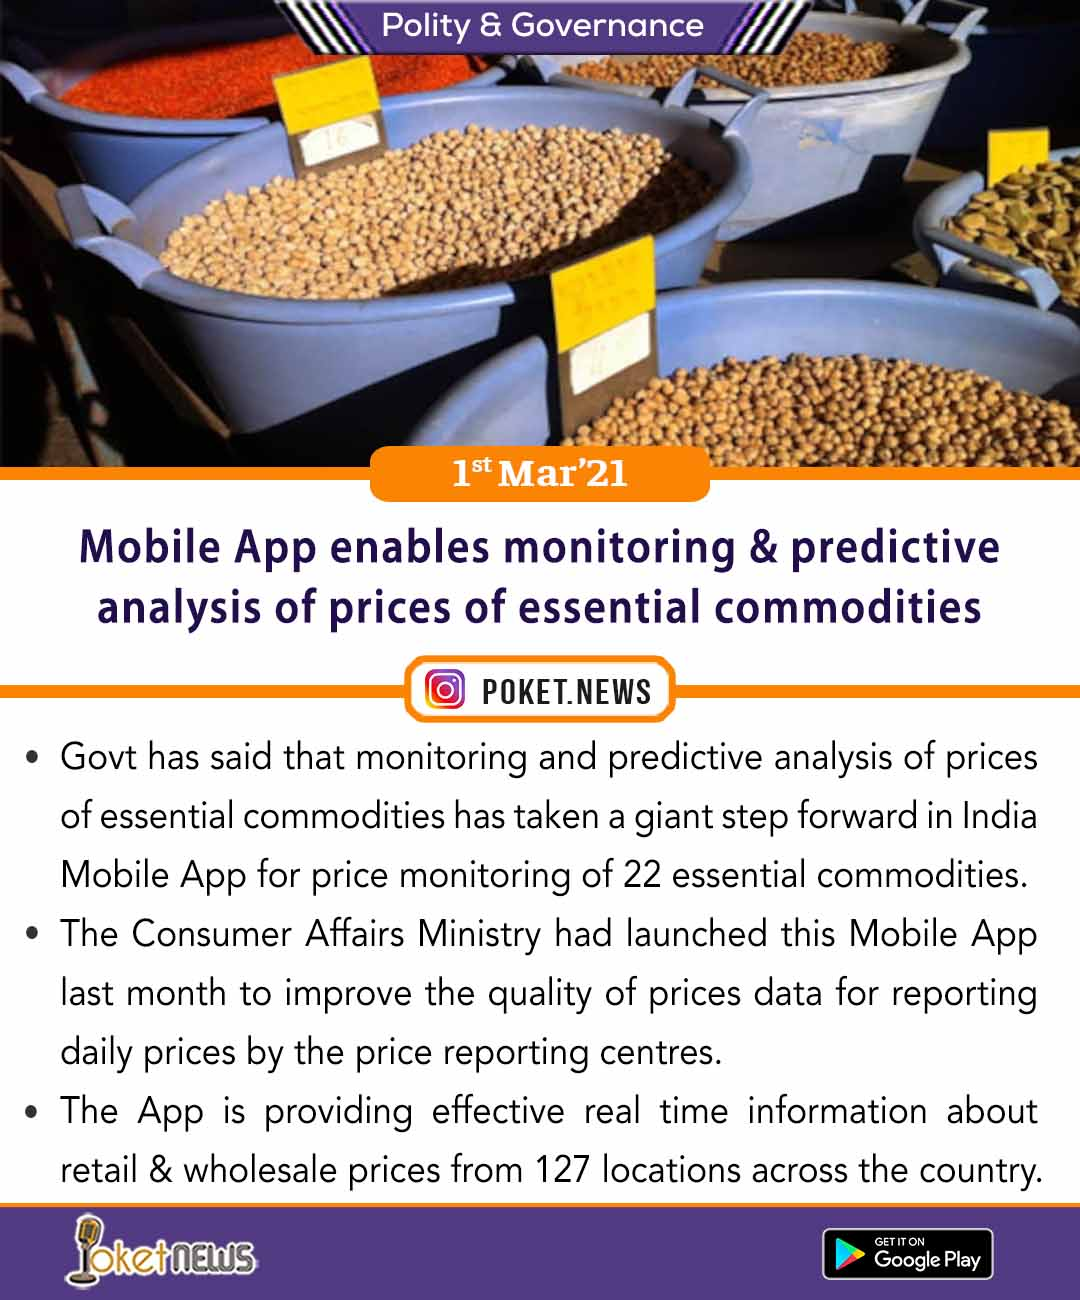 Mobile App enables monitoring and predictive analysis of prices of essential commodities